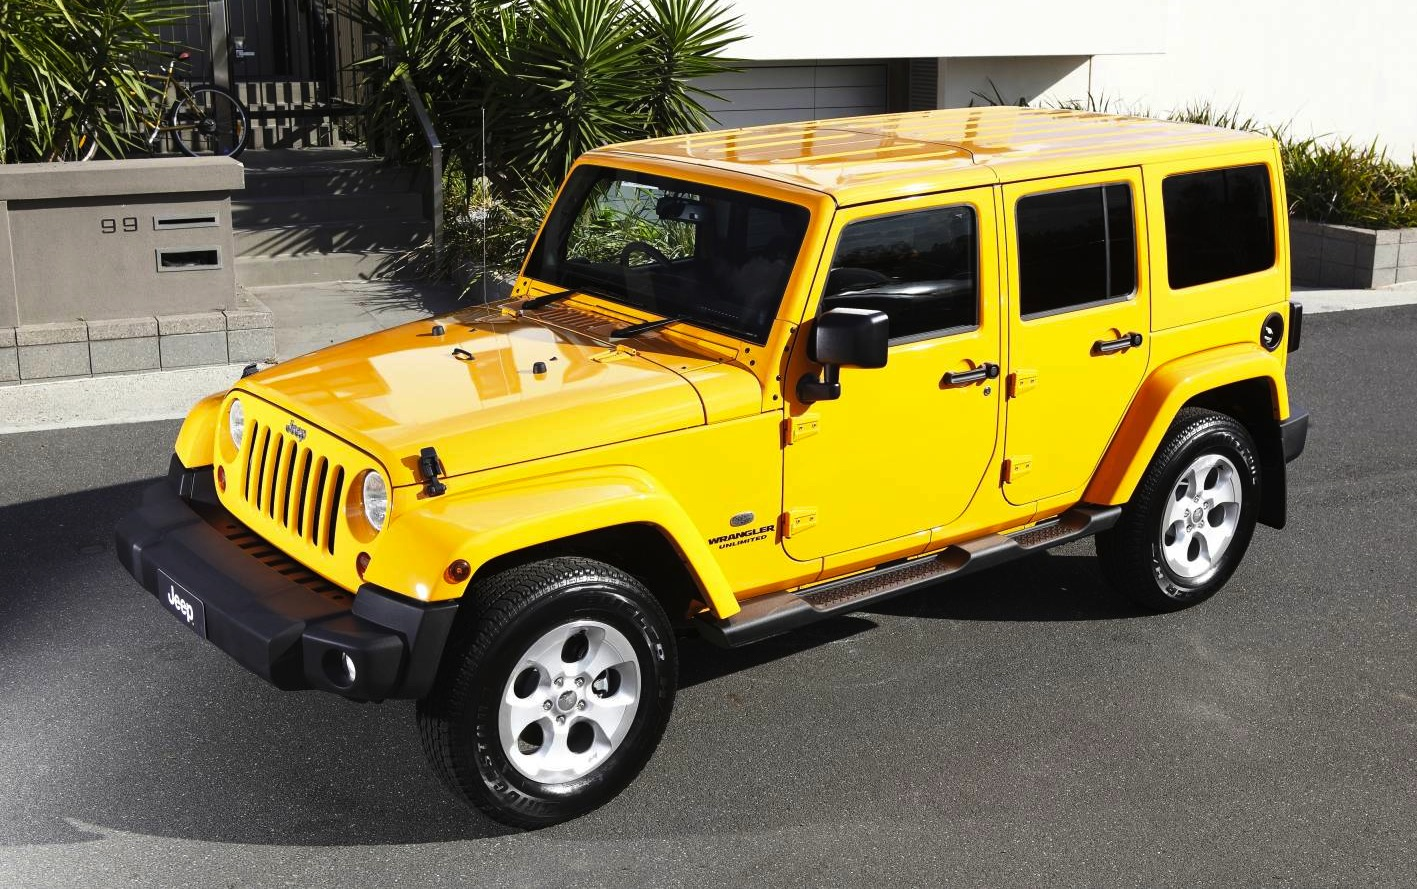 2013 Jeep Wrangler Overland Brings Luxury To Rugged Off